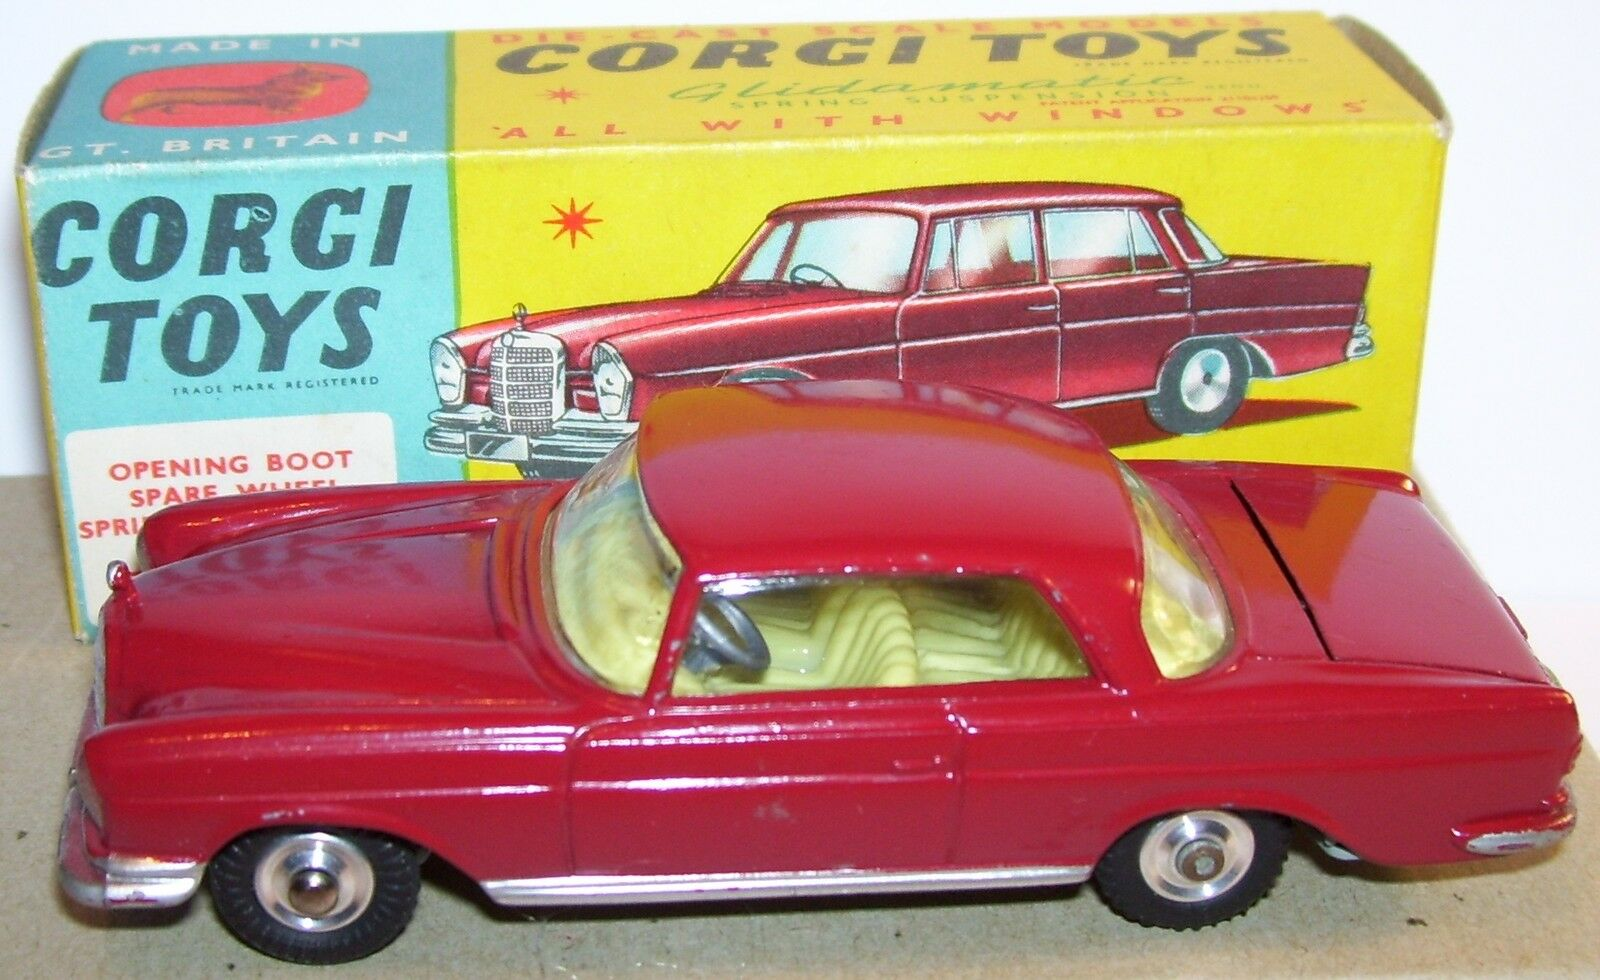 OLD RARE CORGI TOYS MERCEDES BENZ 220 IS COUPE COUPE COUPE WINE RED 1962 REF 230 IN BOX 912a1f